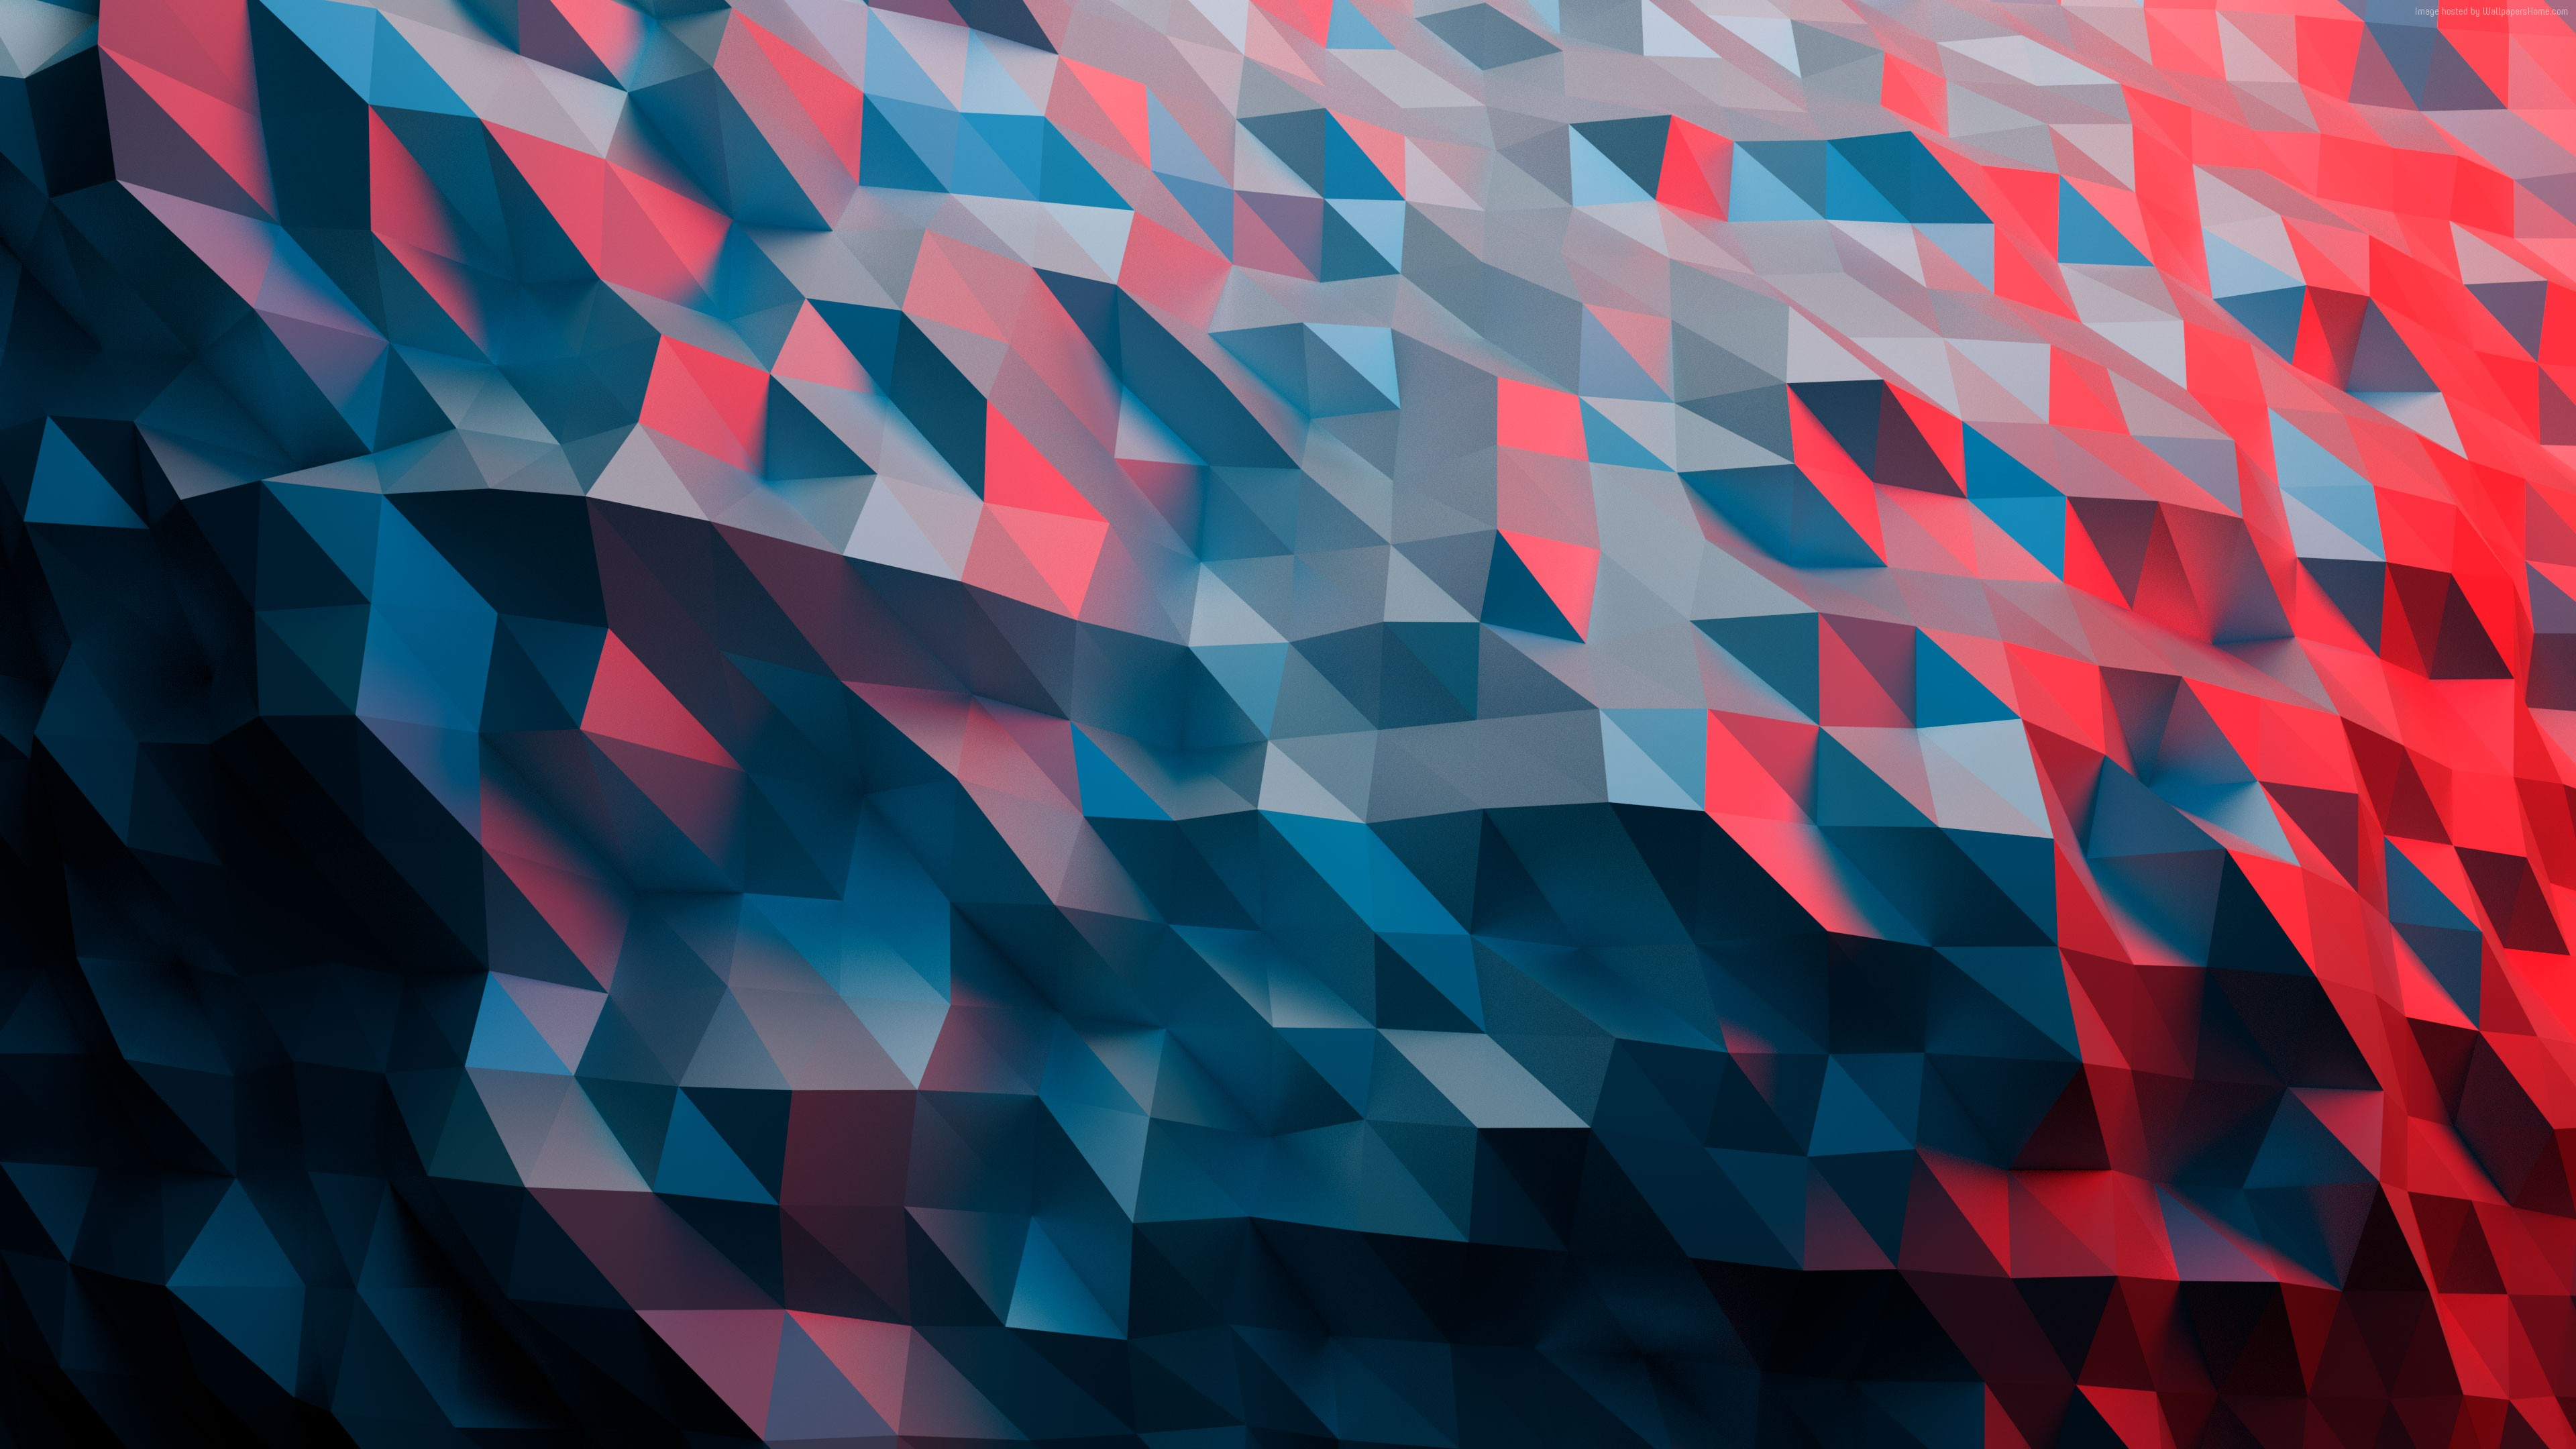 Wallpaper polygon, 4k, Abstract Wallpaper Download - High ...